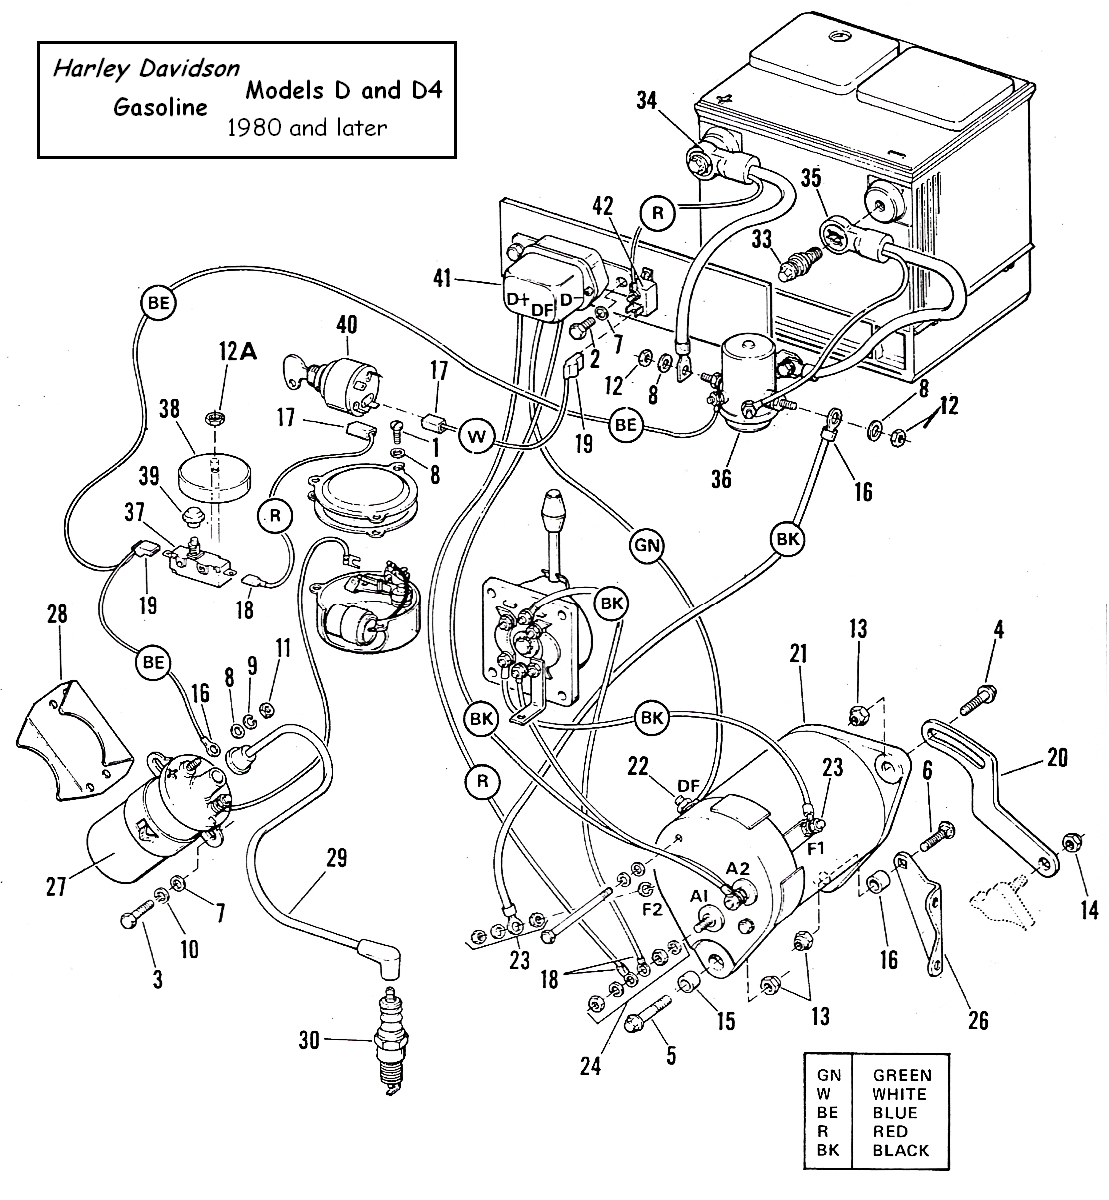 small resolution of hg 101 resize 665 2c720 48 volt columbia par car with sevcon controller columbia par car wiring diagram